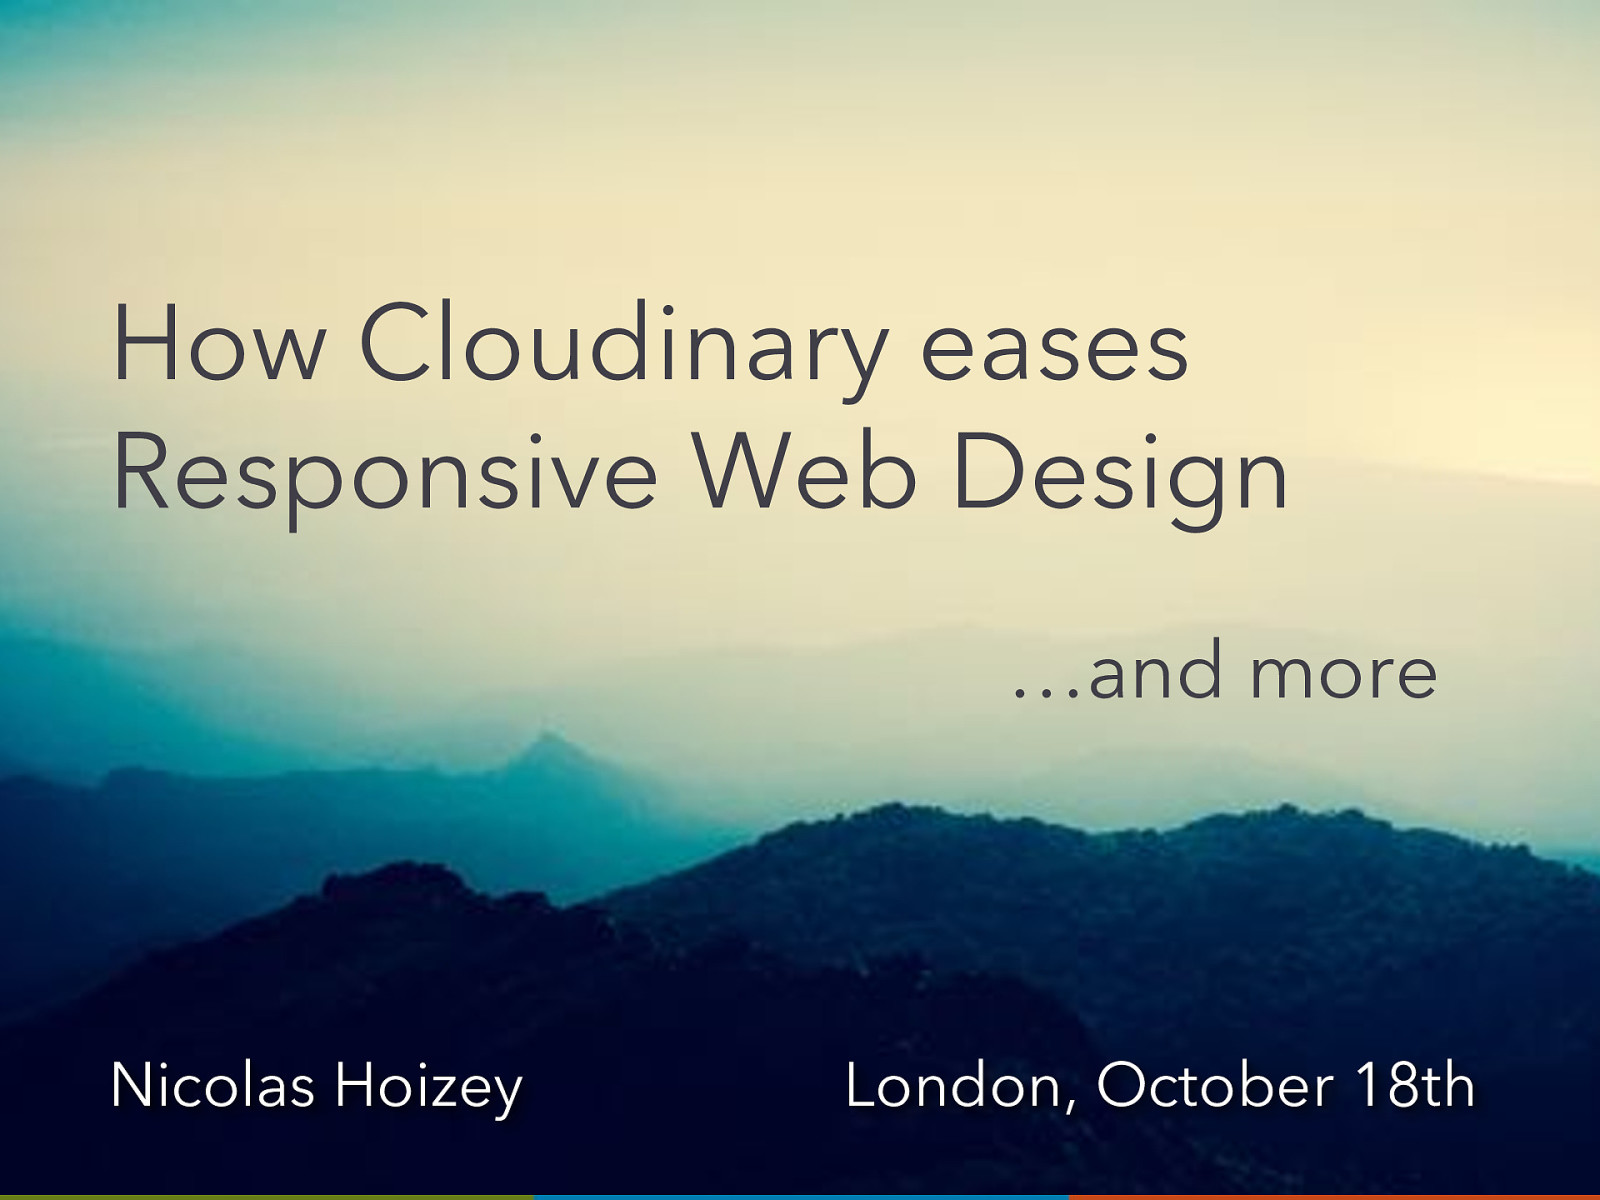 How Cloudinary eases Responsive Web Design, and more